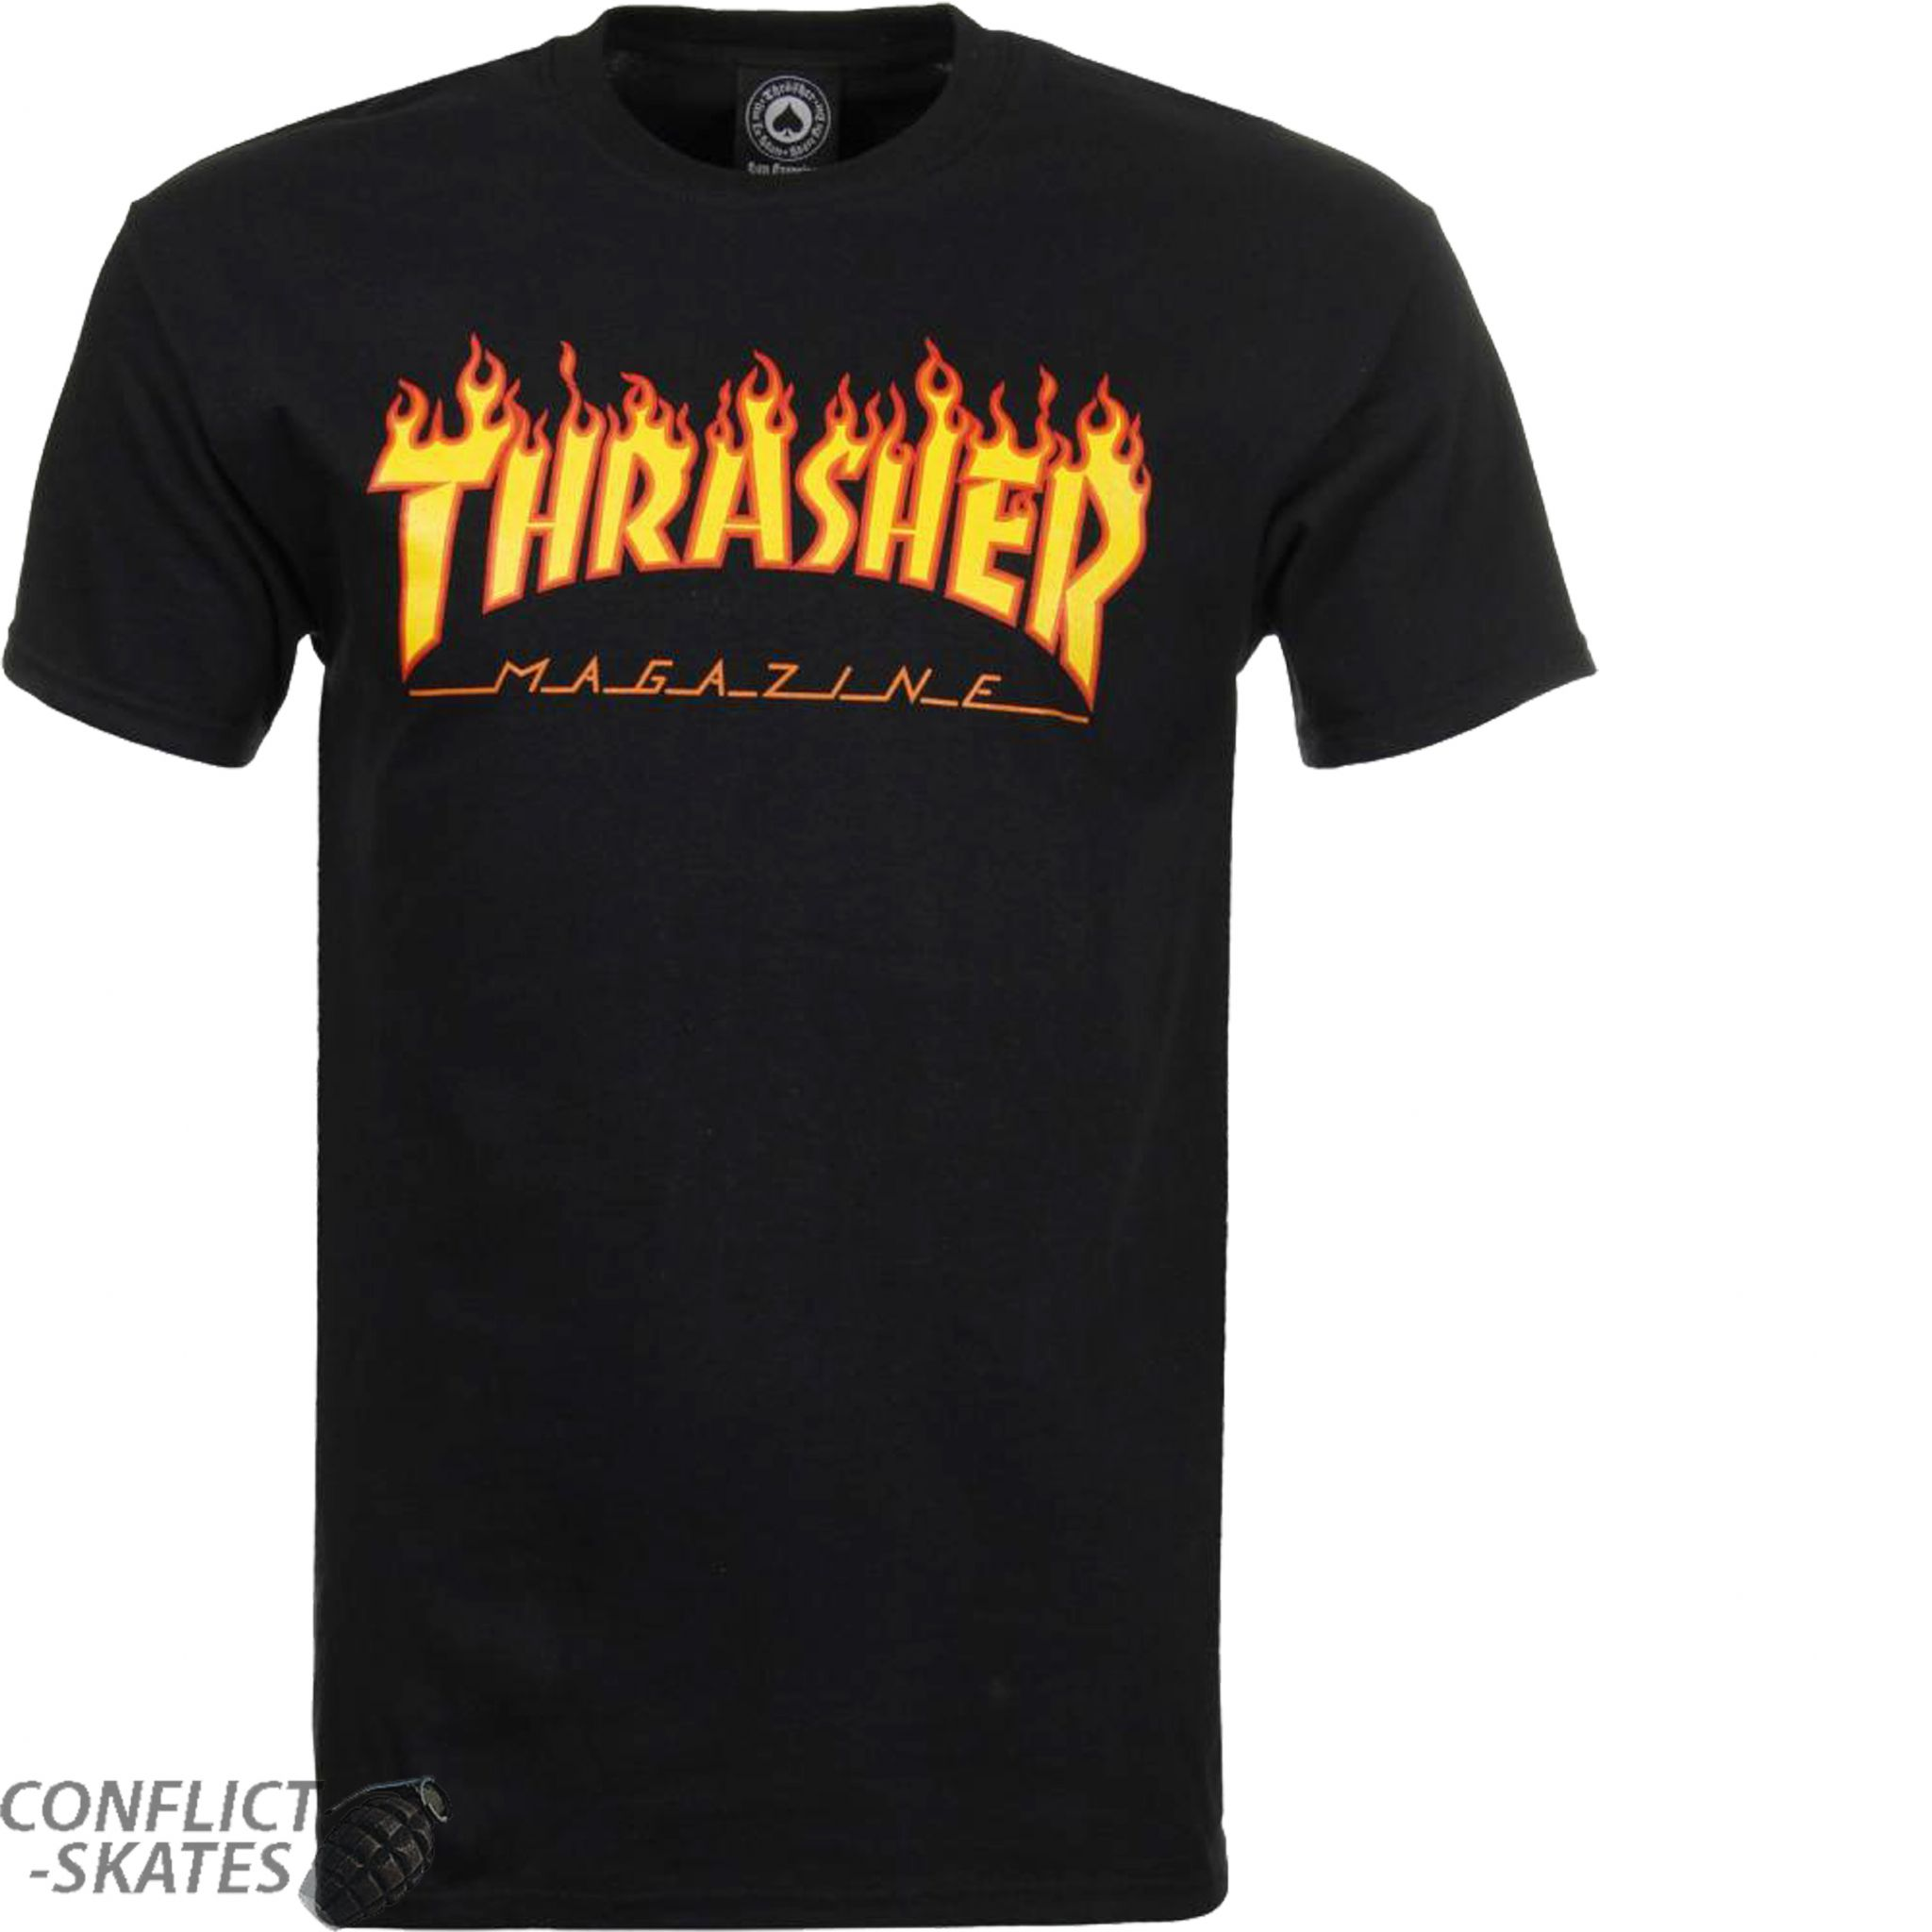 aba412eb2258 THRASHER MAGAZINE Flame Logo Skateboard T-Shirt Black S M L or XL